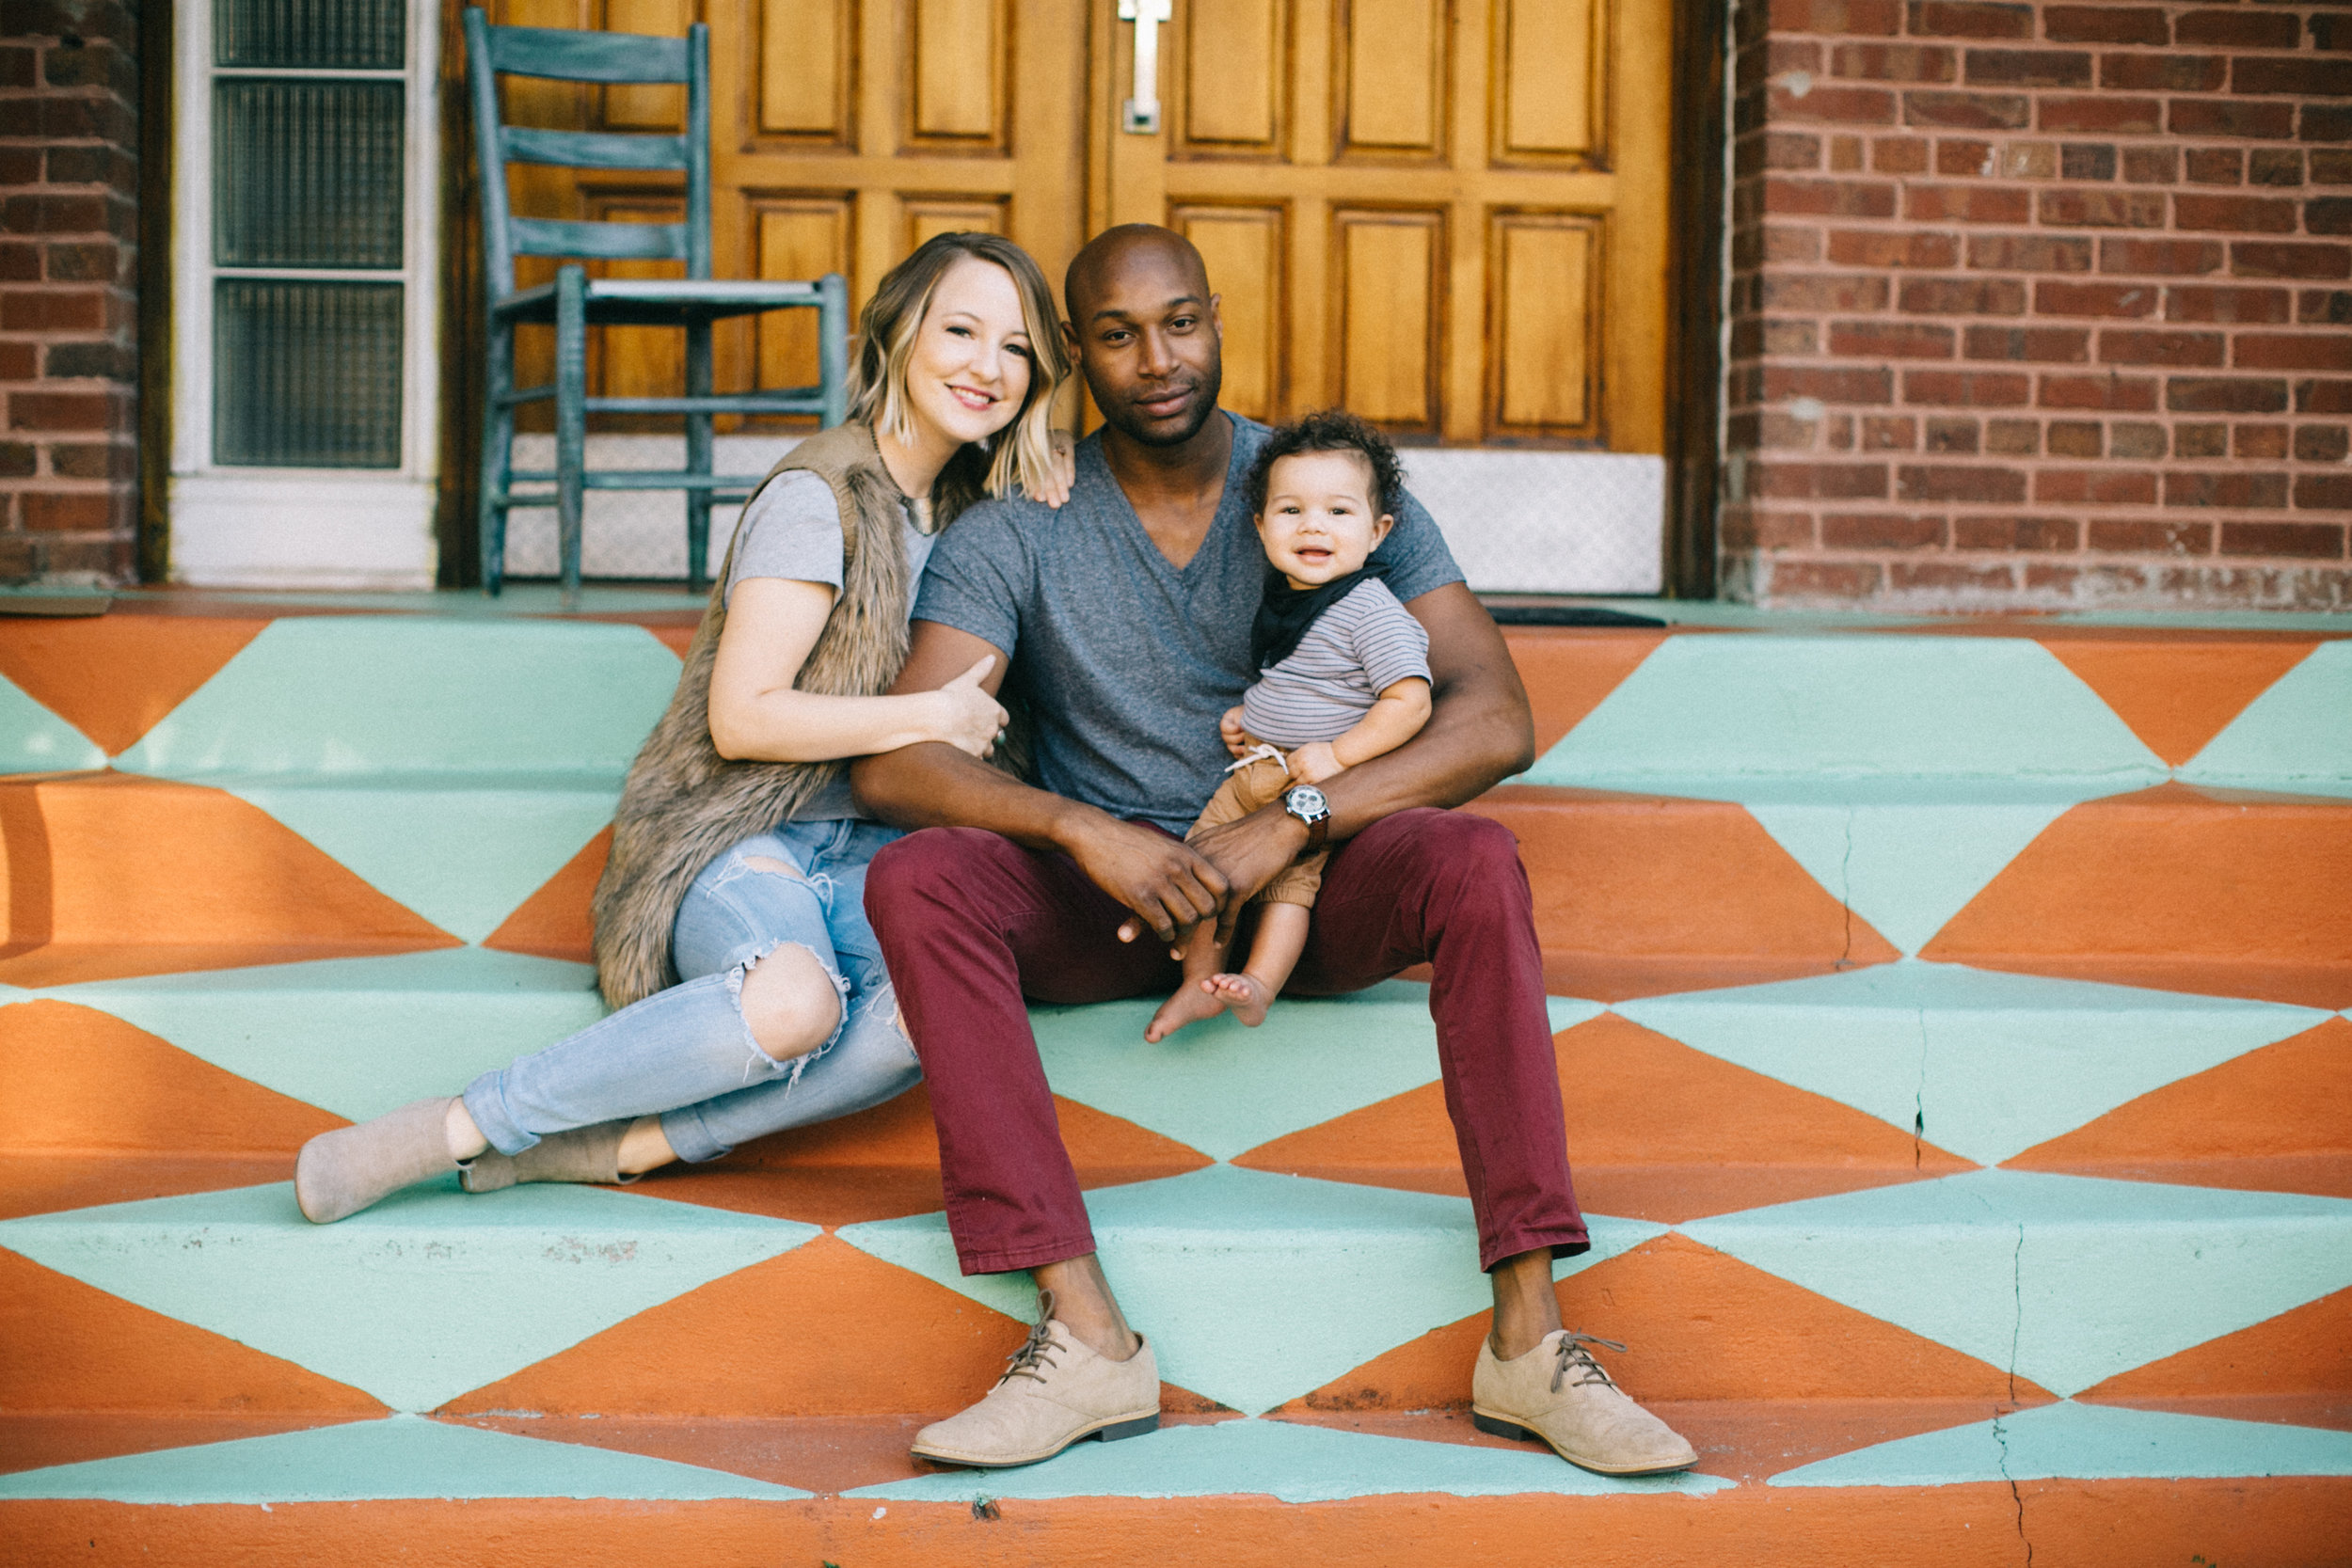 Tampa Family Photography downtown urband industrial_02.jpg